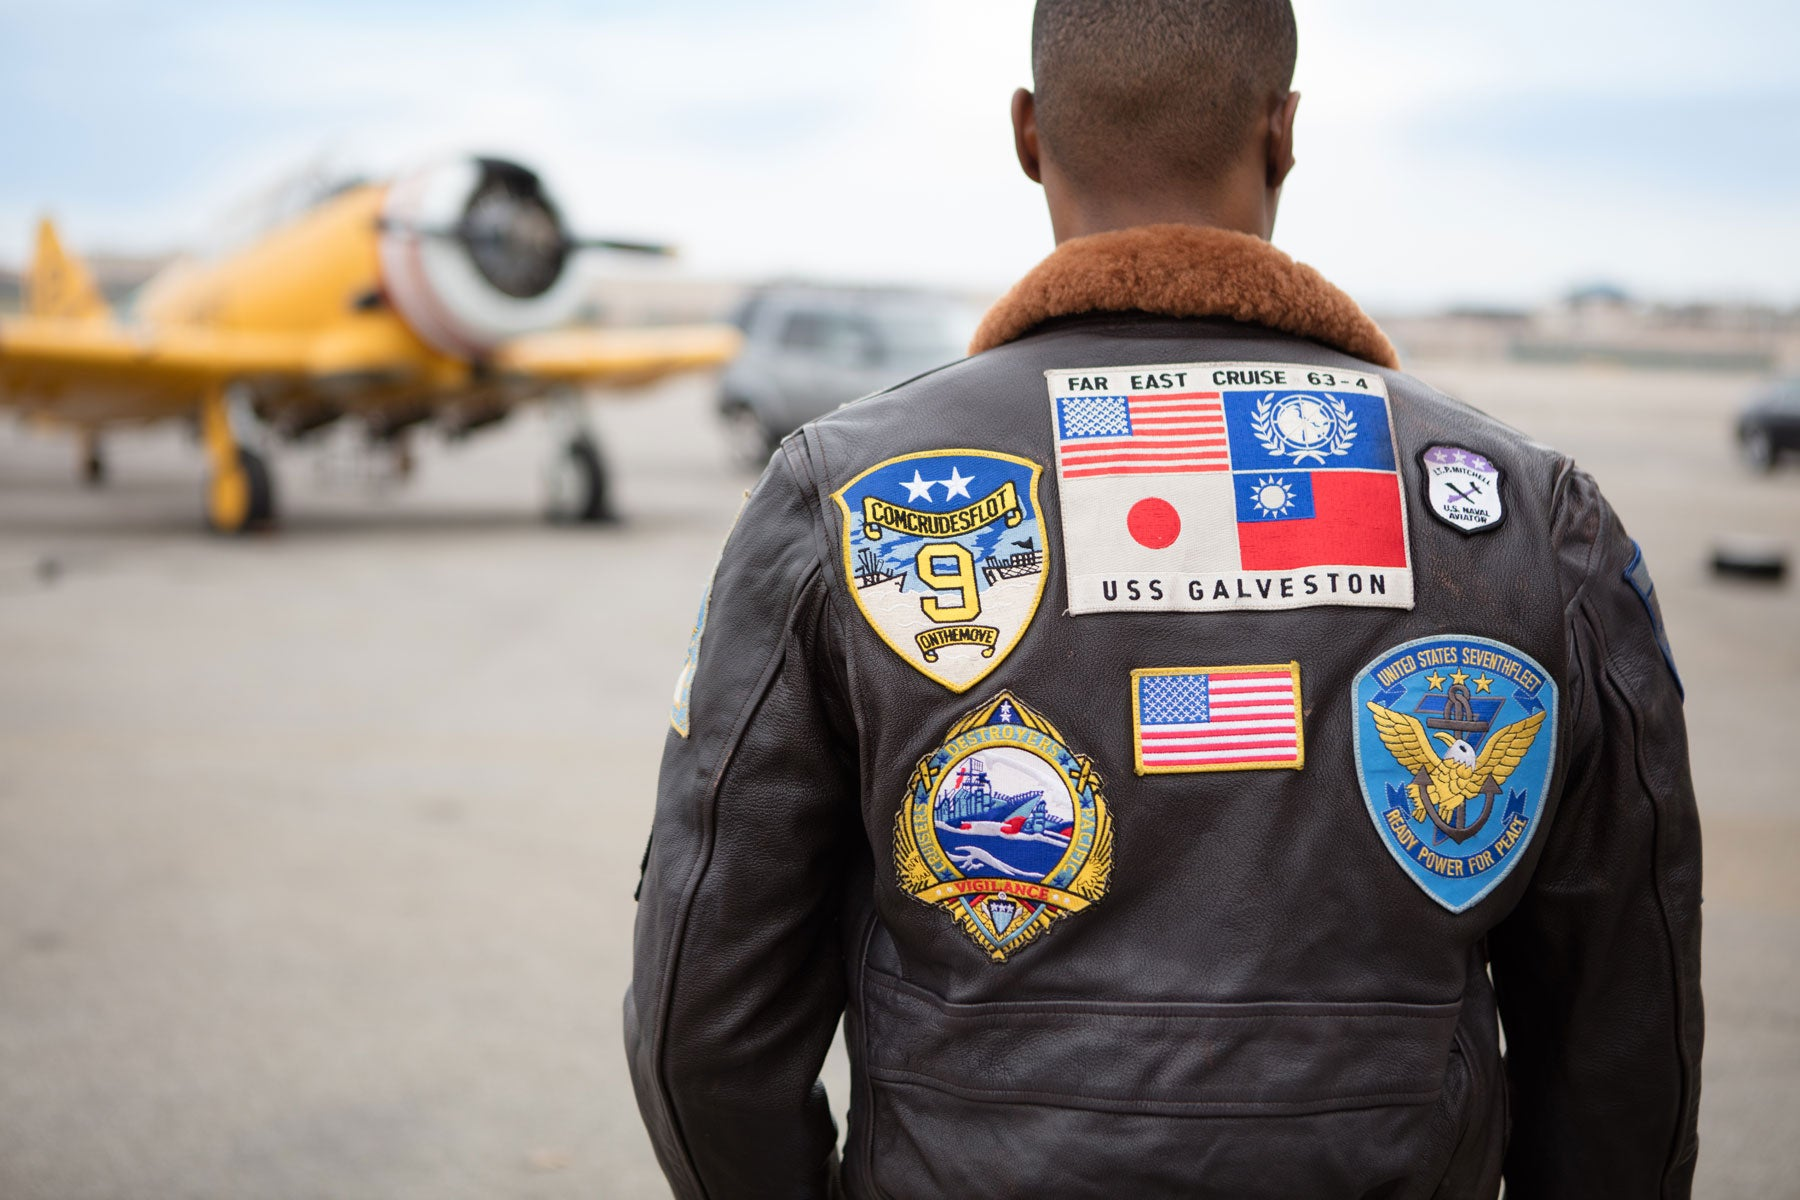 Enter to win a Cockpit USA Movie Heroes Top Gun G-1 Flight Jacket